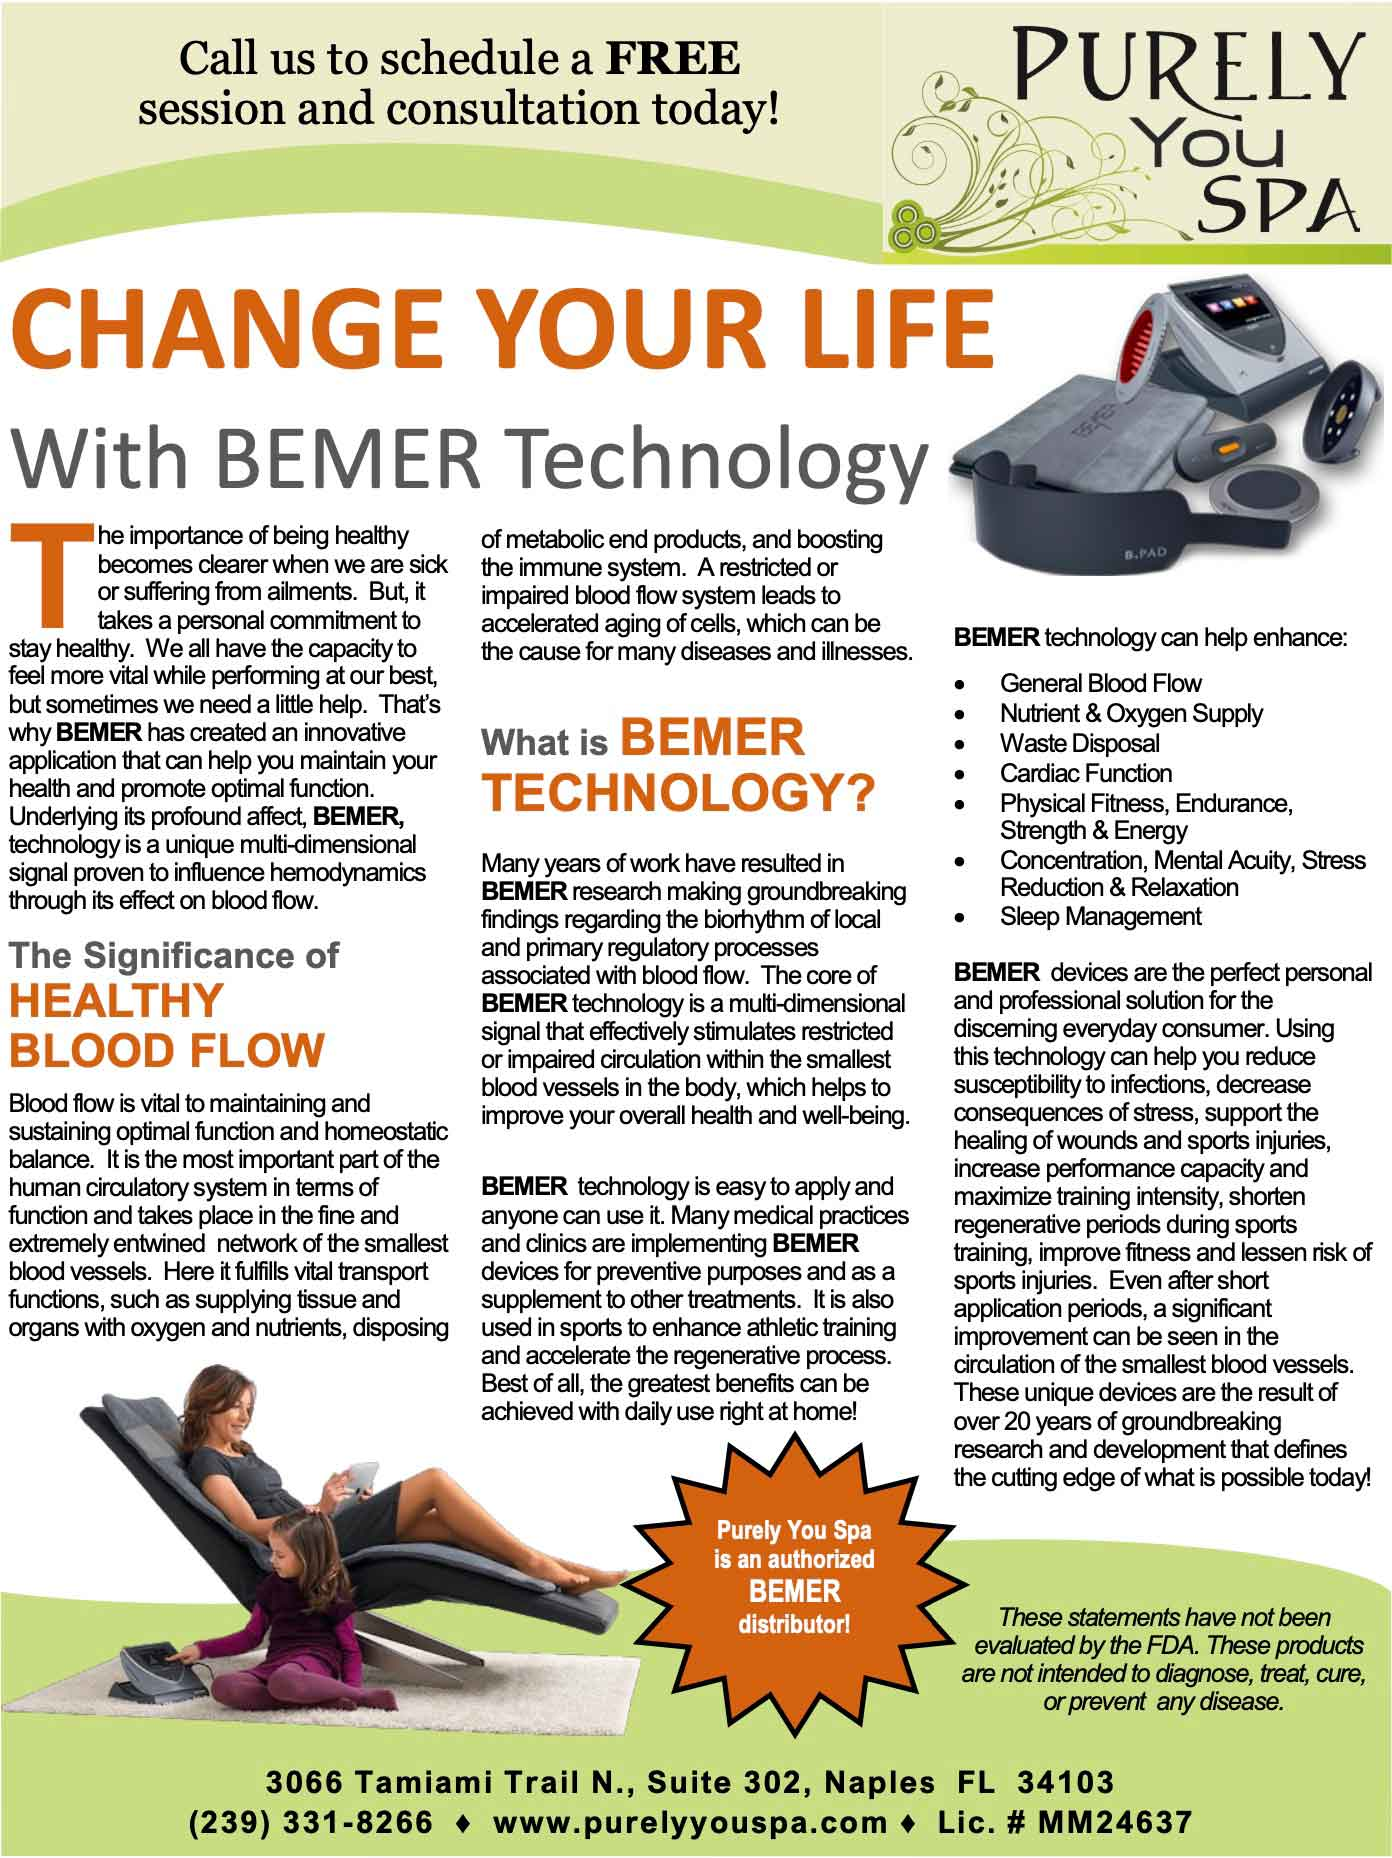 Change Your Life with Bemer Technology | Purely You Spa